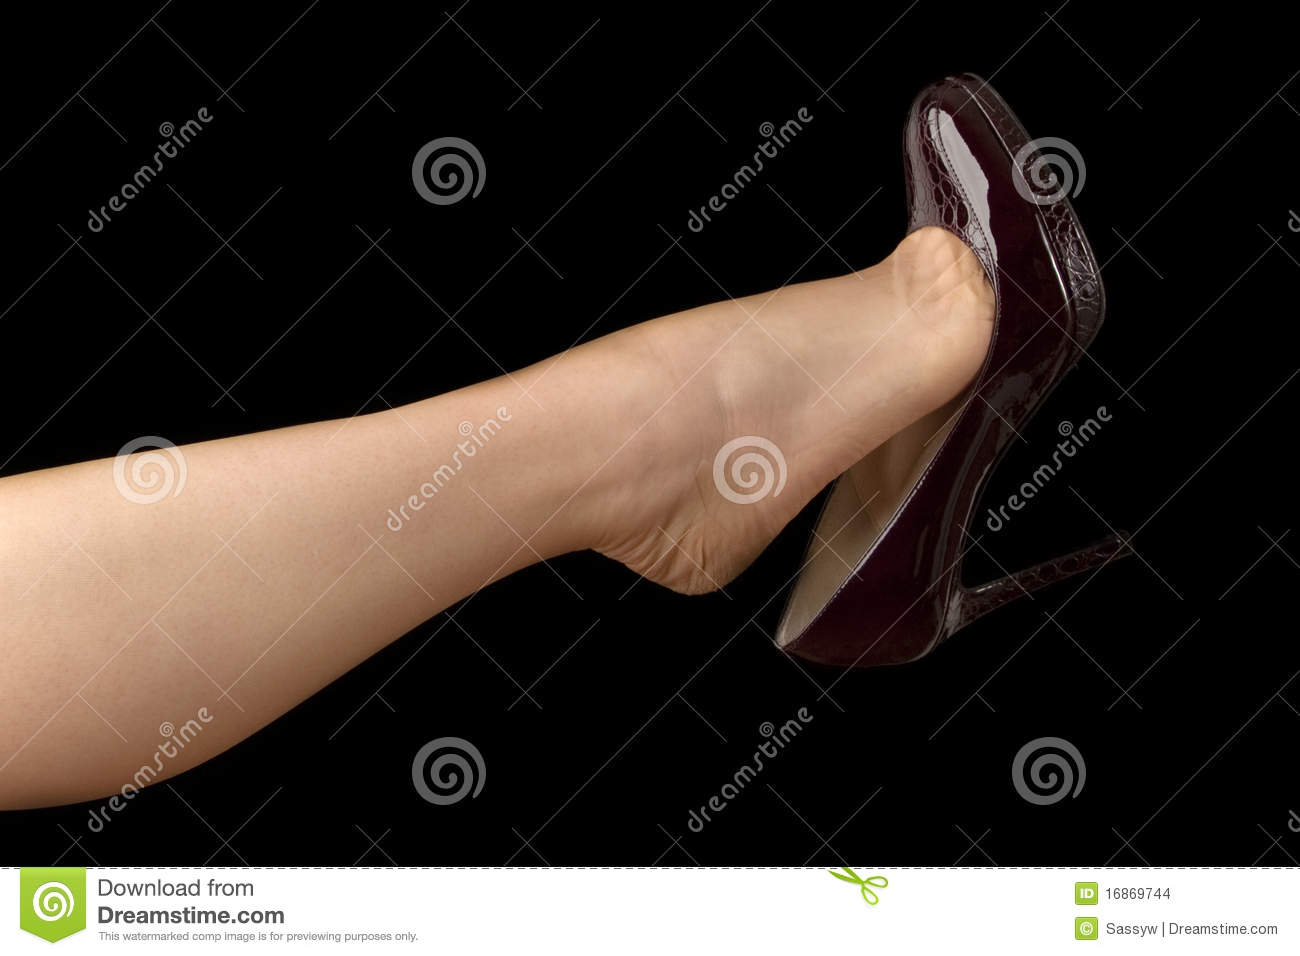 Shoe Danglers http://www.dreamstime.com/stock-images-shoe-dangling-image16869744